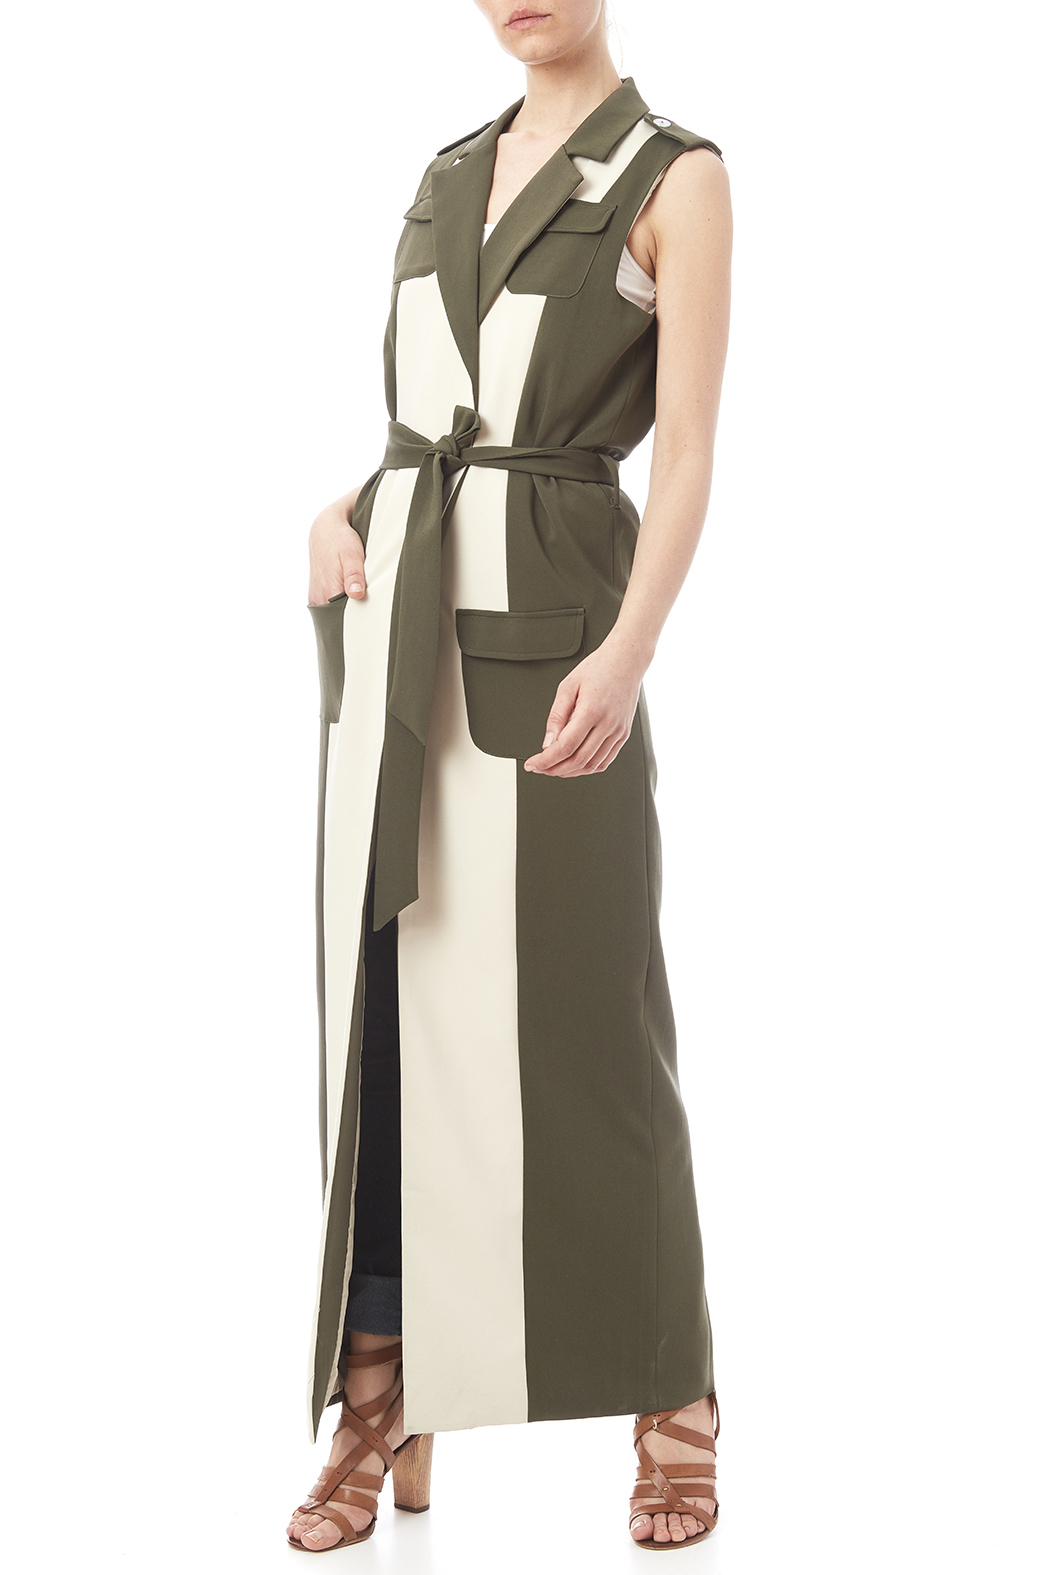 LAVISH ALICE Two Tone Trench - Main Image